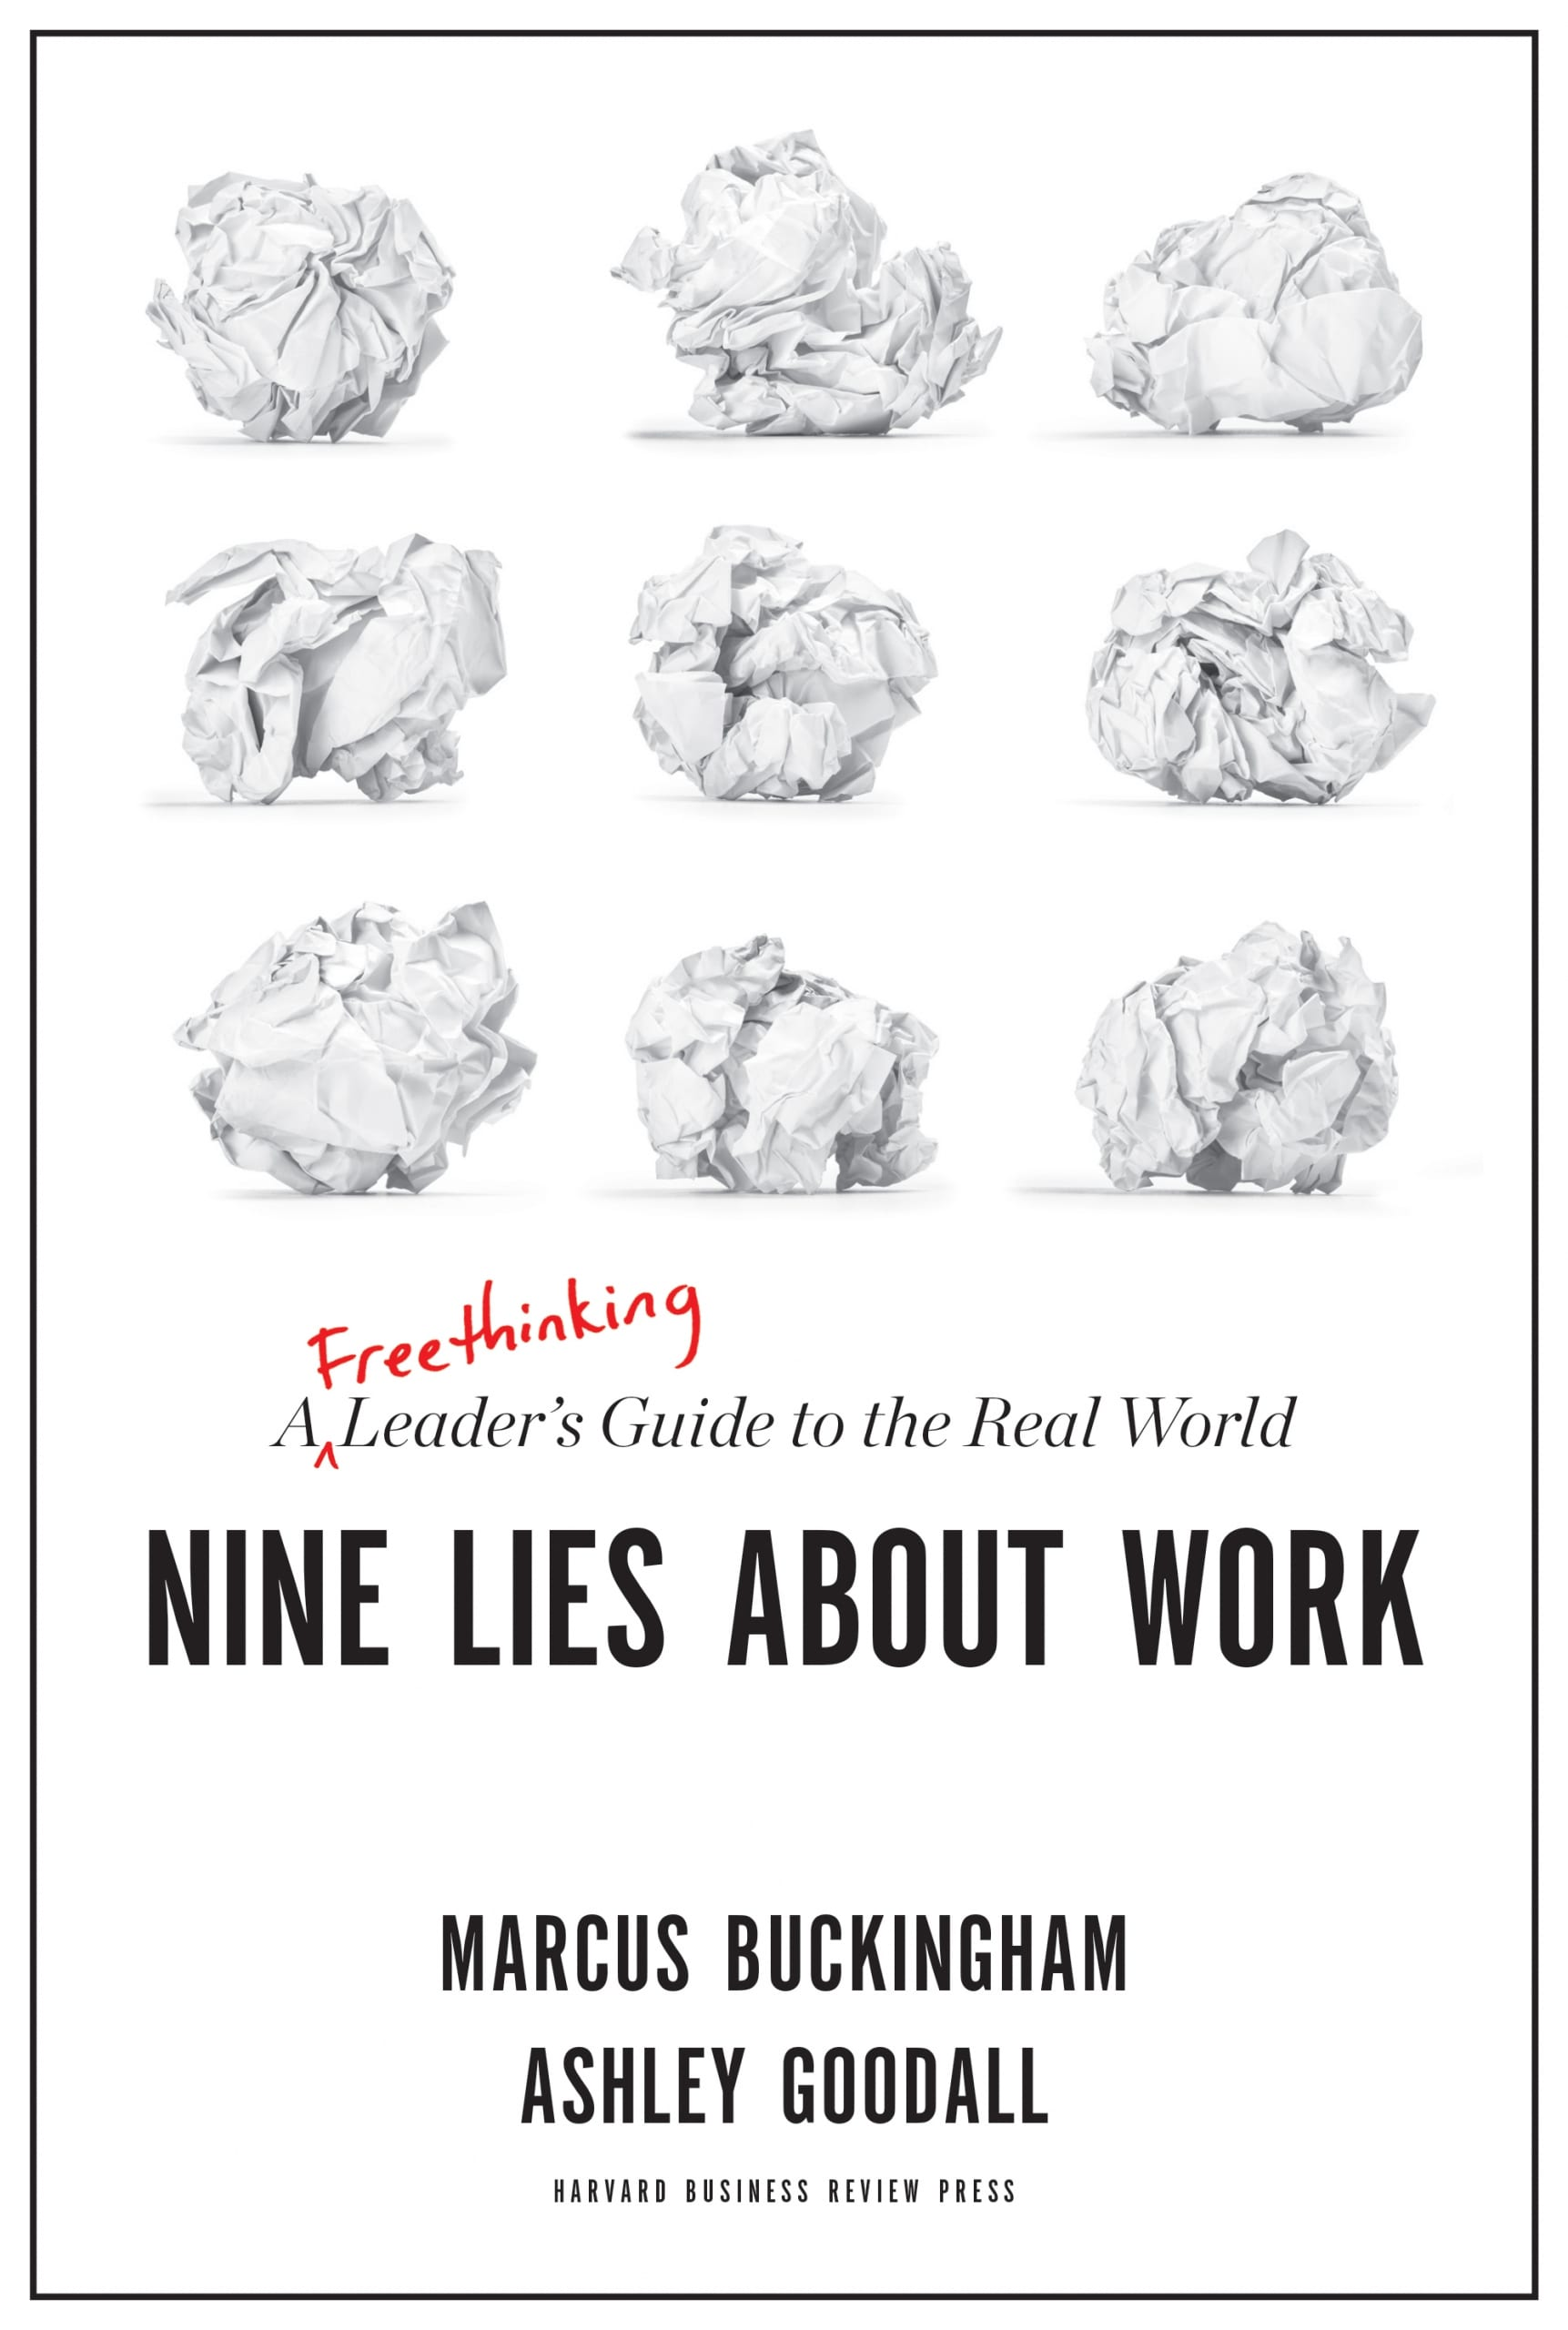 StrategyDriven Managing Your People Article   Nine Lies About Work - Is it more engaging to be a full-time worker, a part-time worker, a virtual worker, or a gig worker?